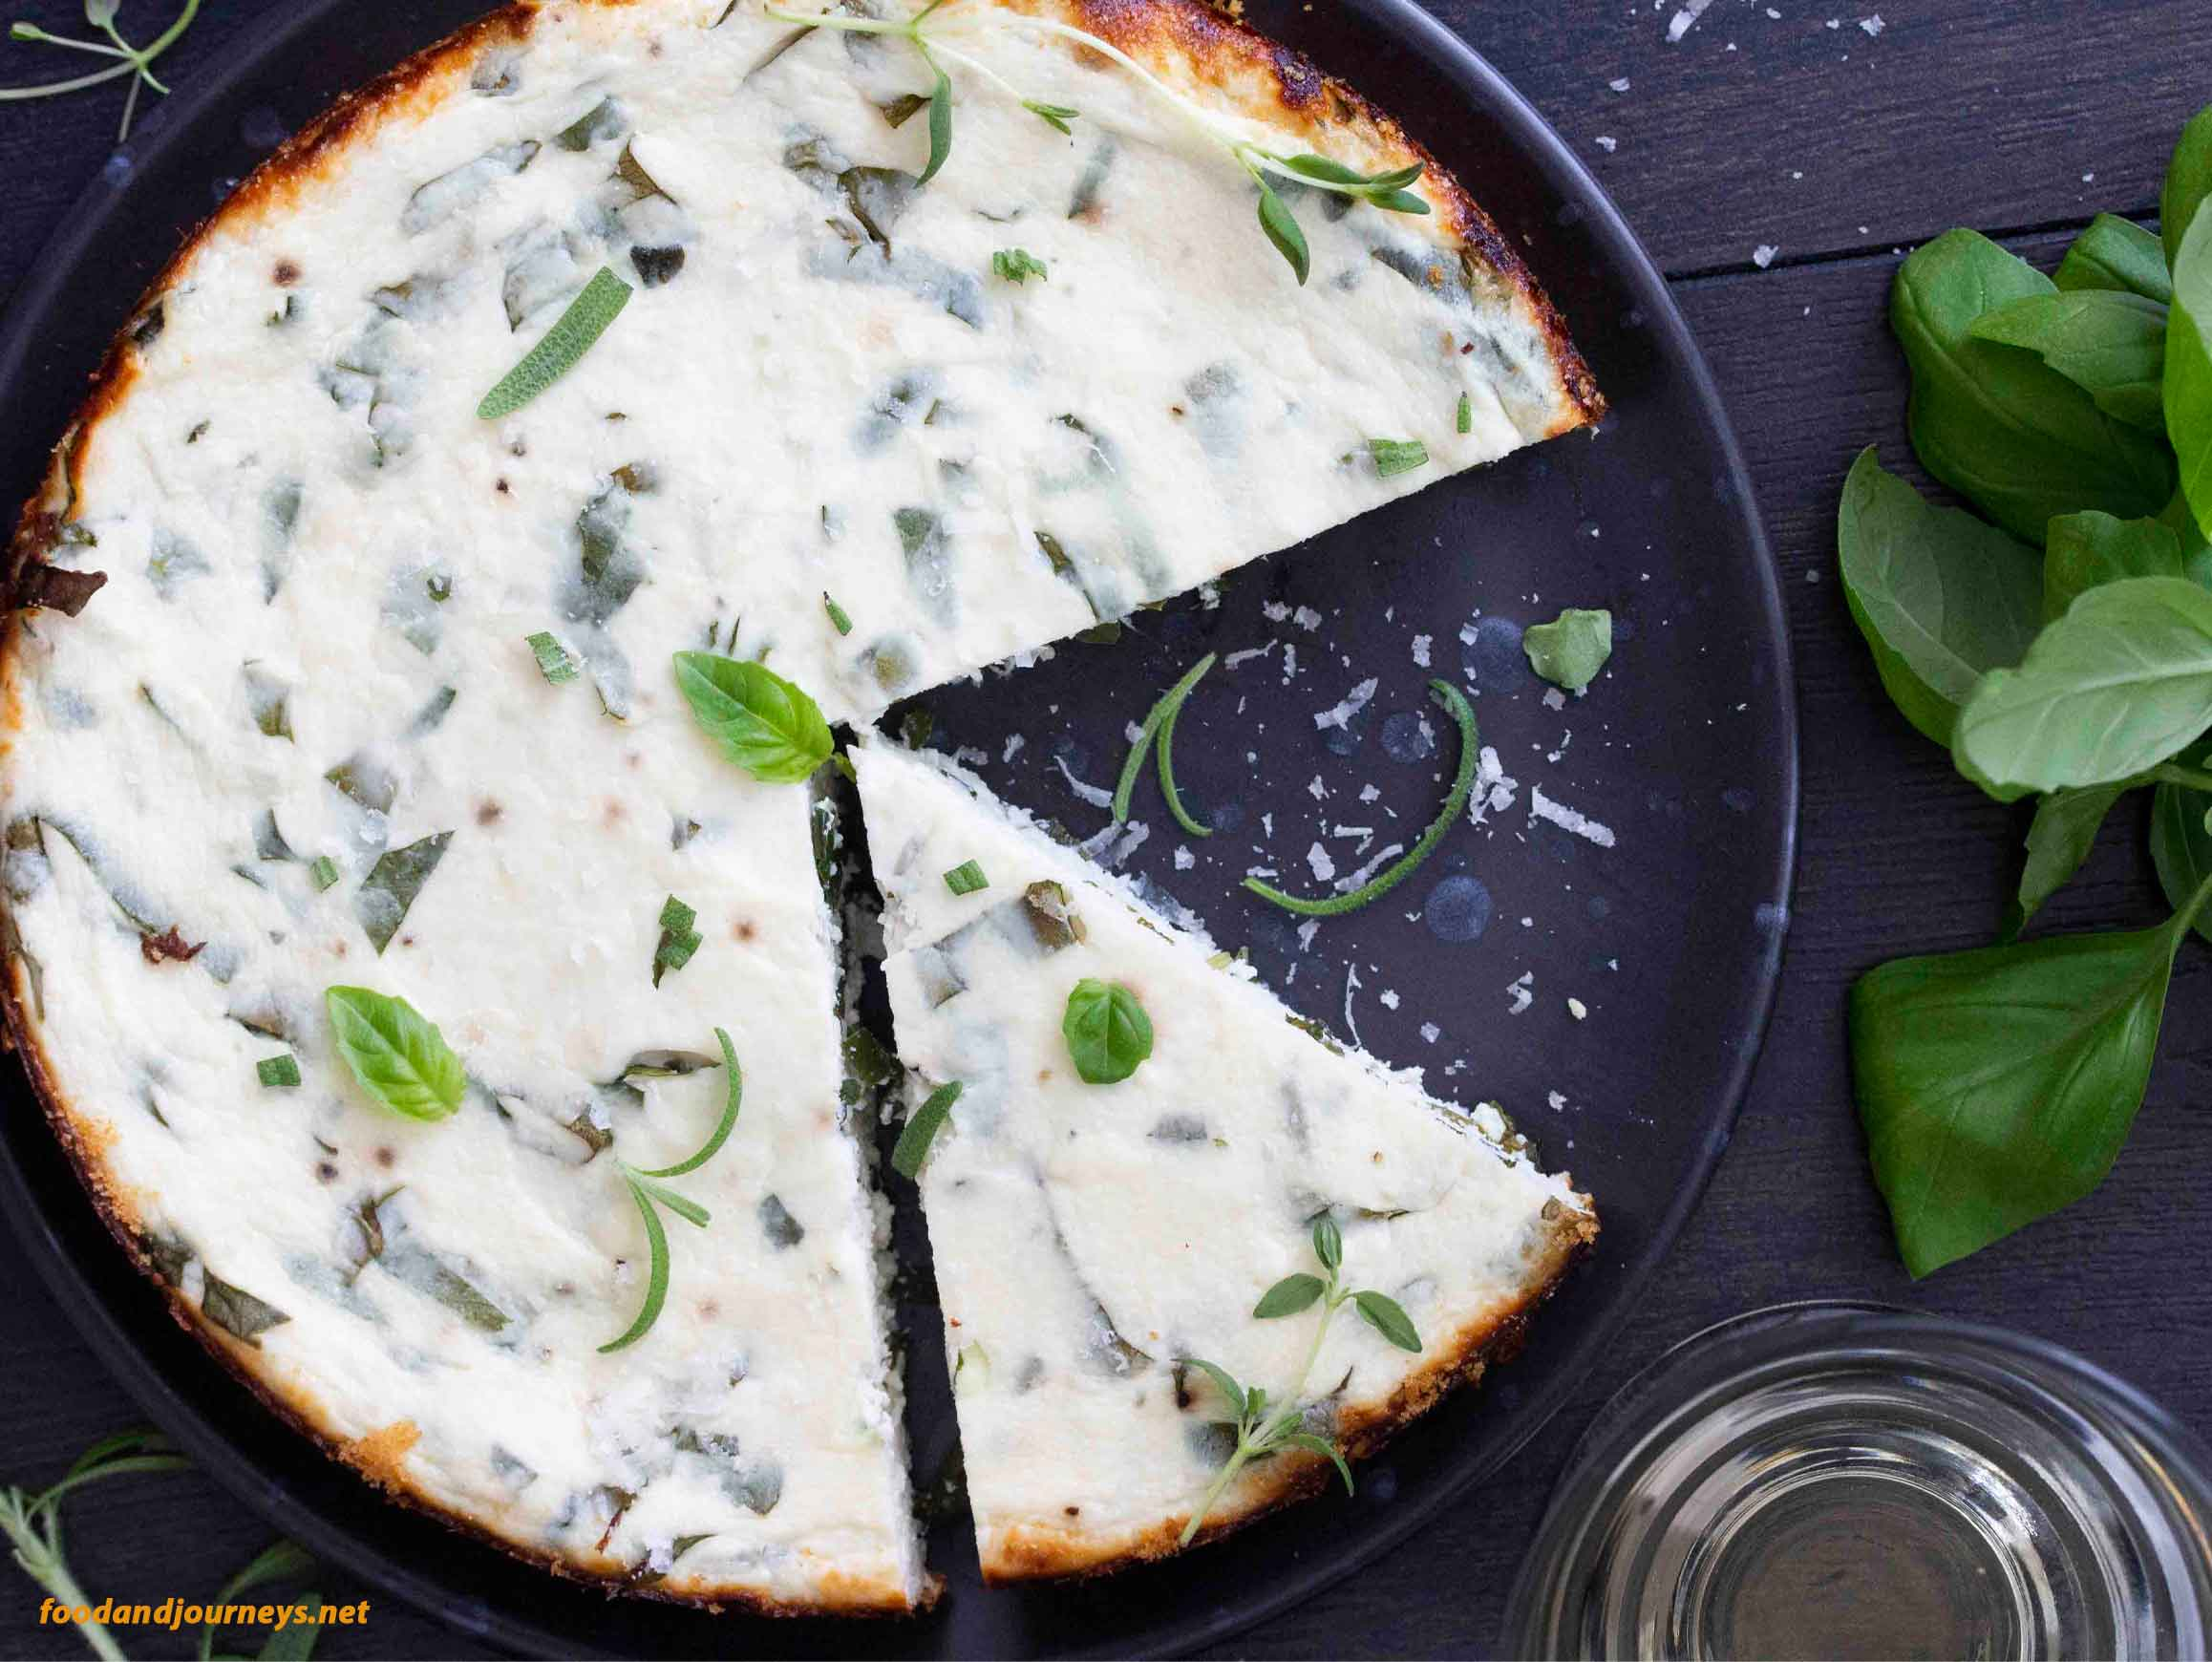 Overhead shot of Herbed Ricotta Tart, with some fresh basil on the side and a glass of white wine